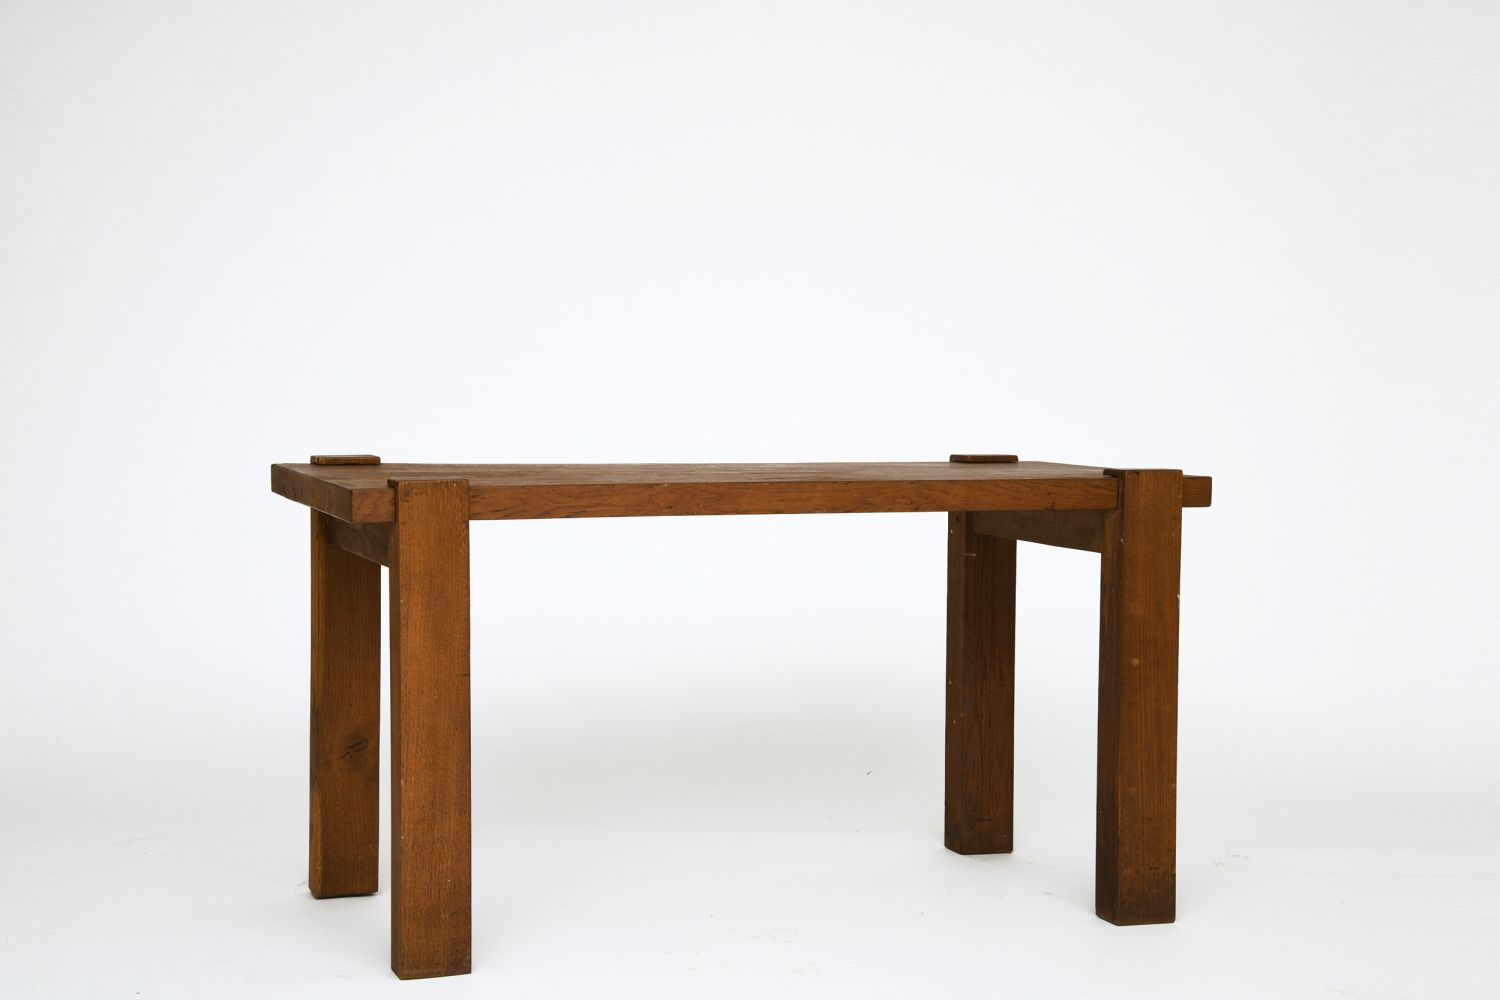 Henry Jacques Le Même's Table/Console, full view